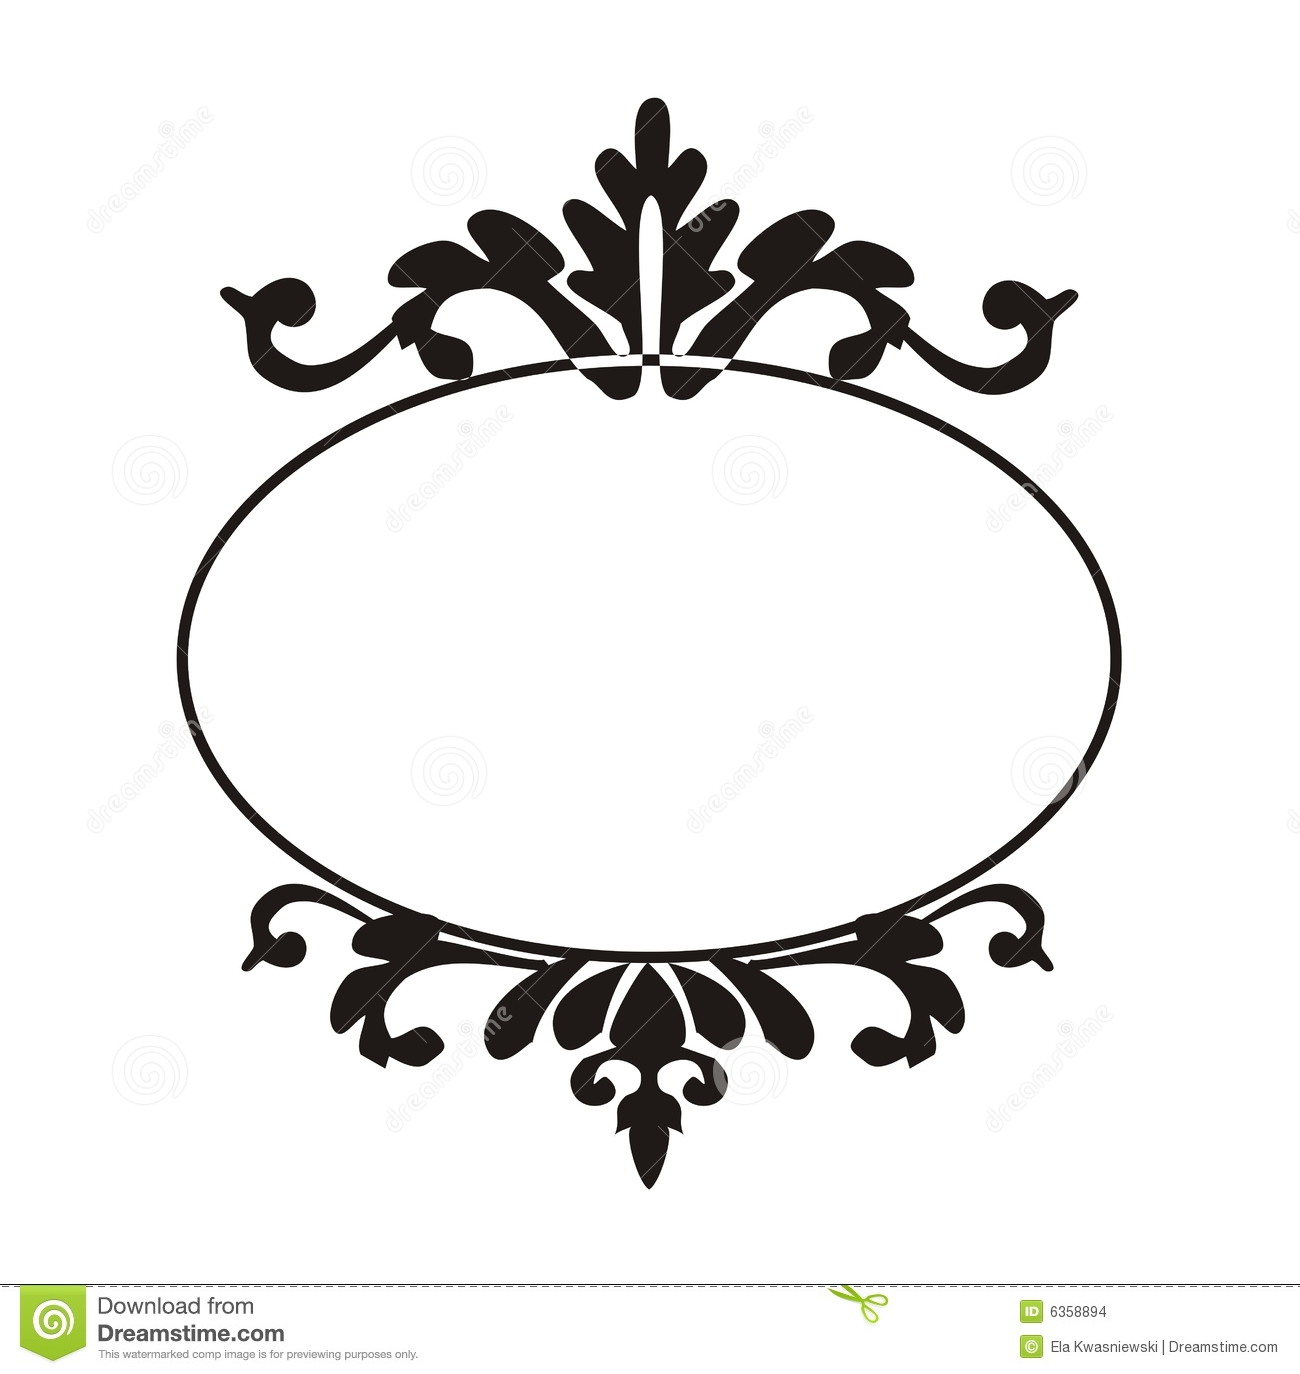 Classic design elements stock vector. Image of pattern